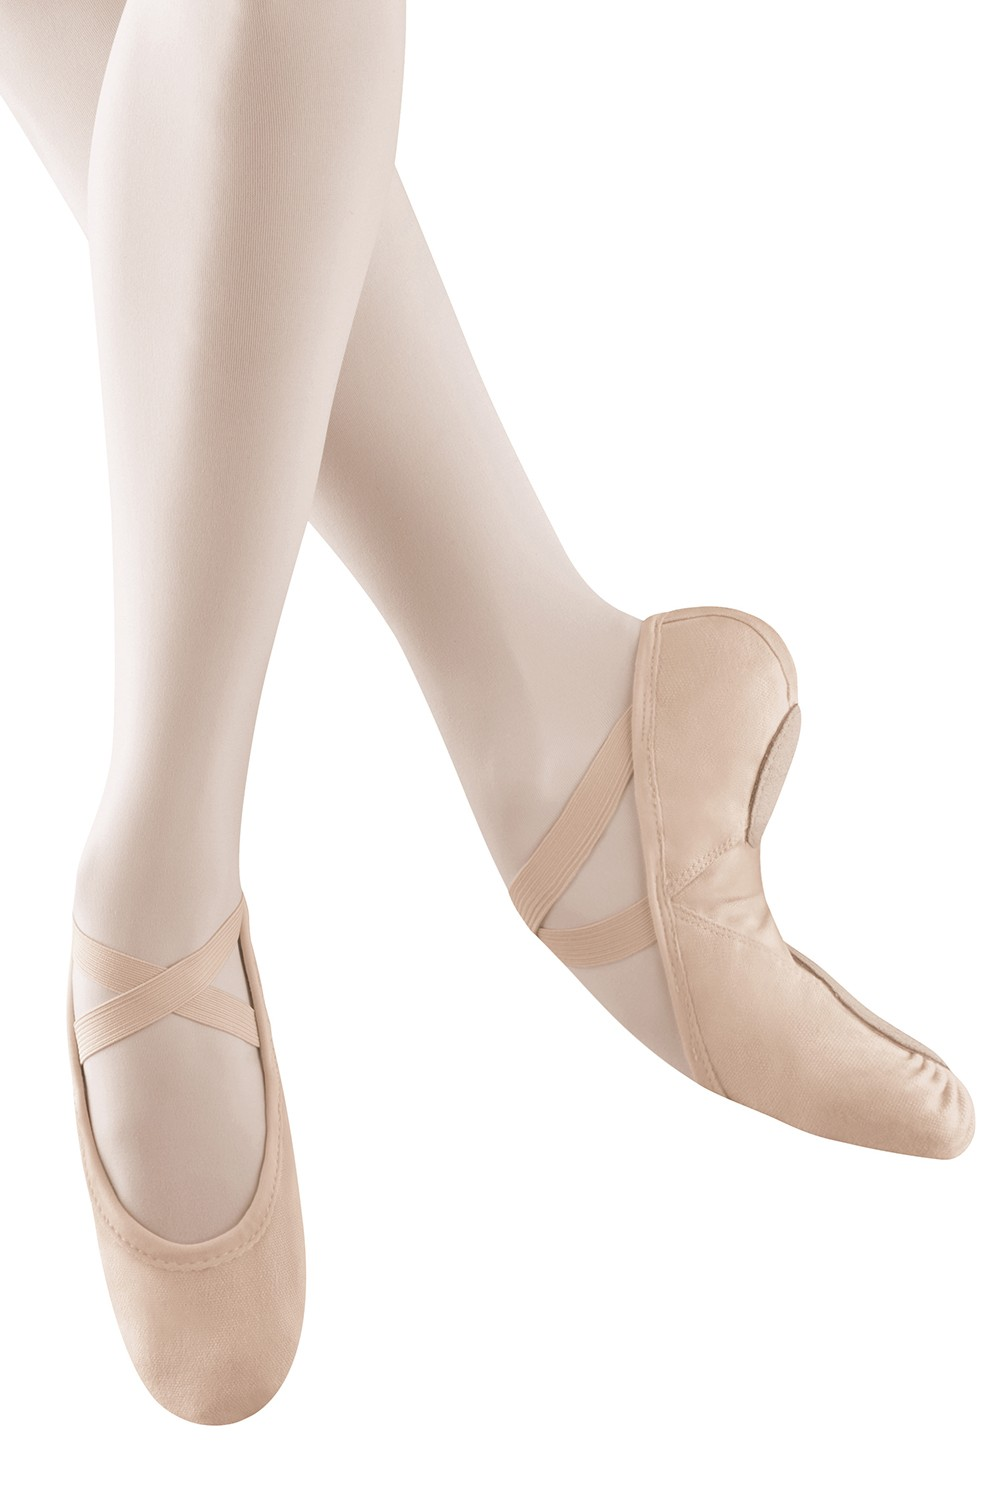 Ms225l Women's Ballet Shoes